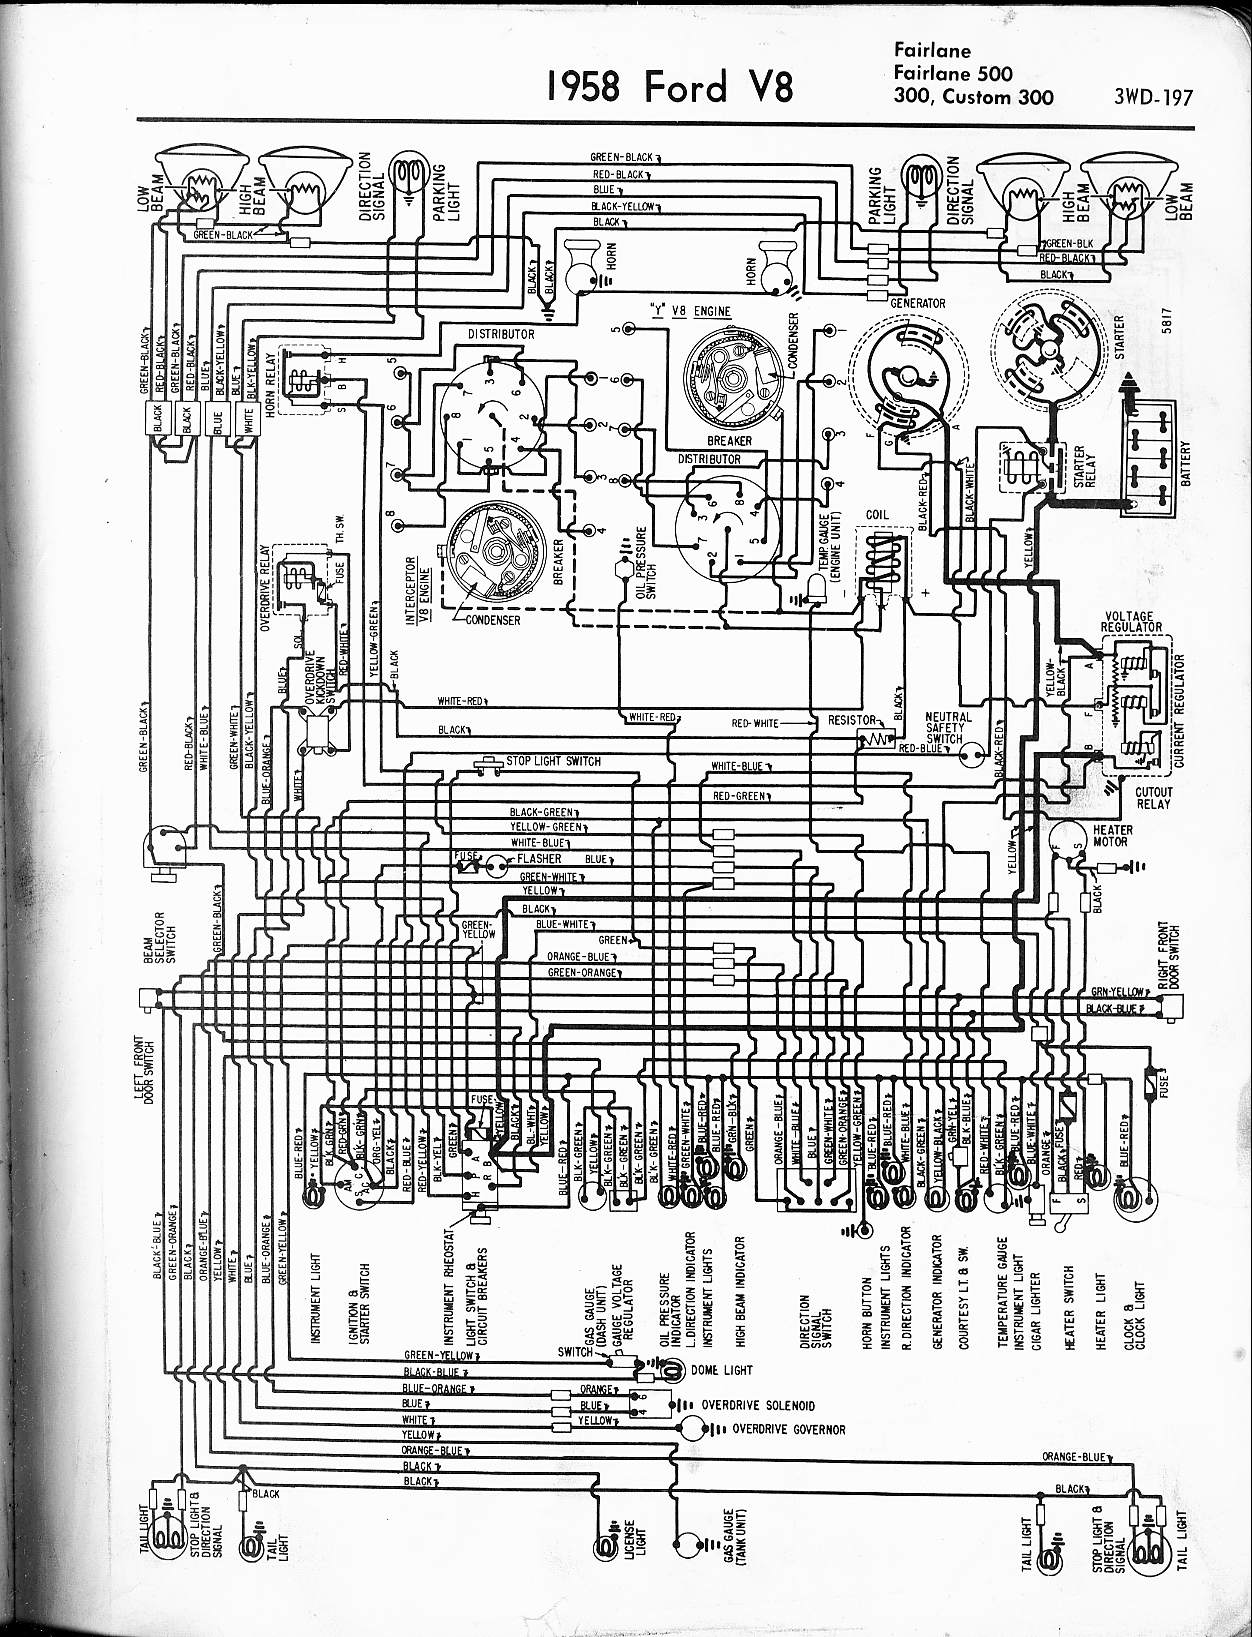 1968 chrysler newport wiring diagram for list of wiring 1966 Dodge Dart Wiring Diagram